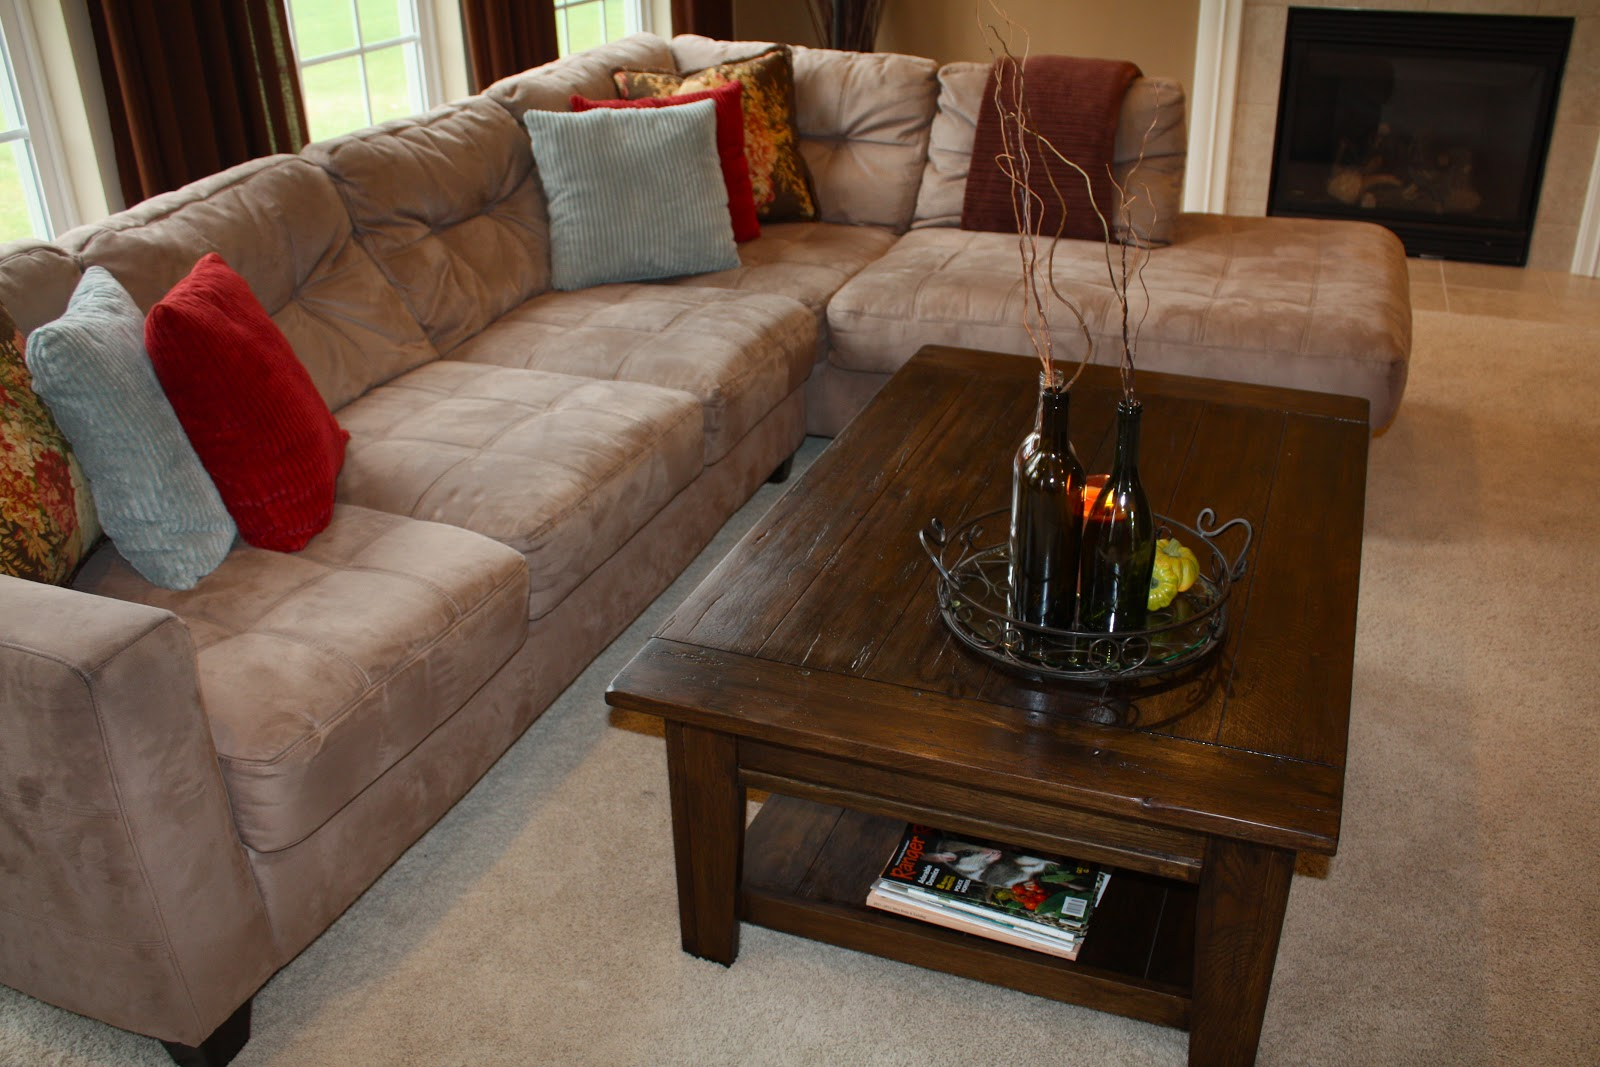 Refinishing Coffee Table Ideas Photograph | set out to refin